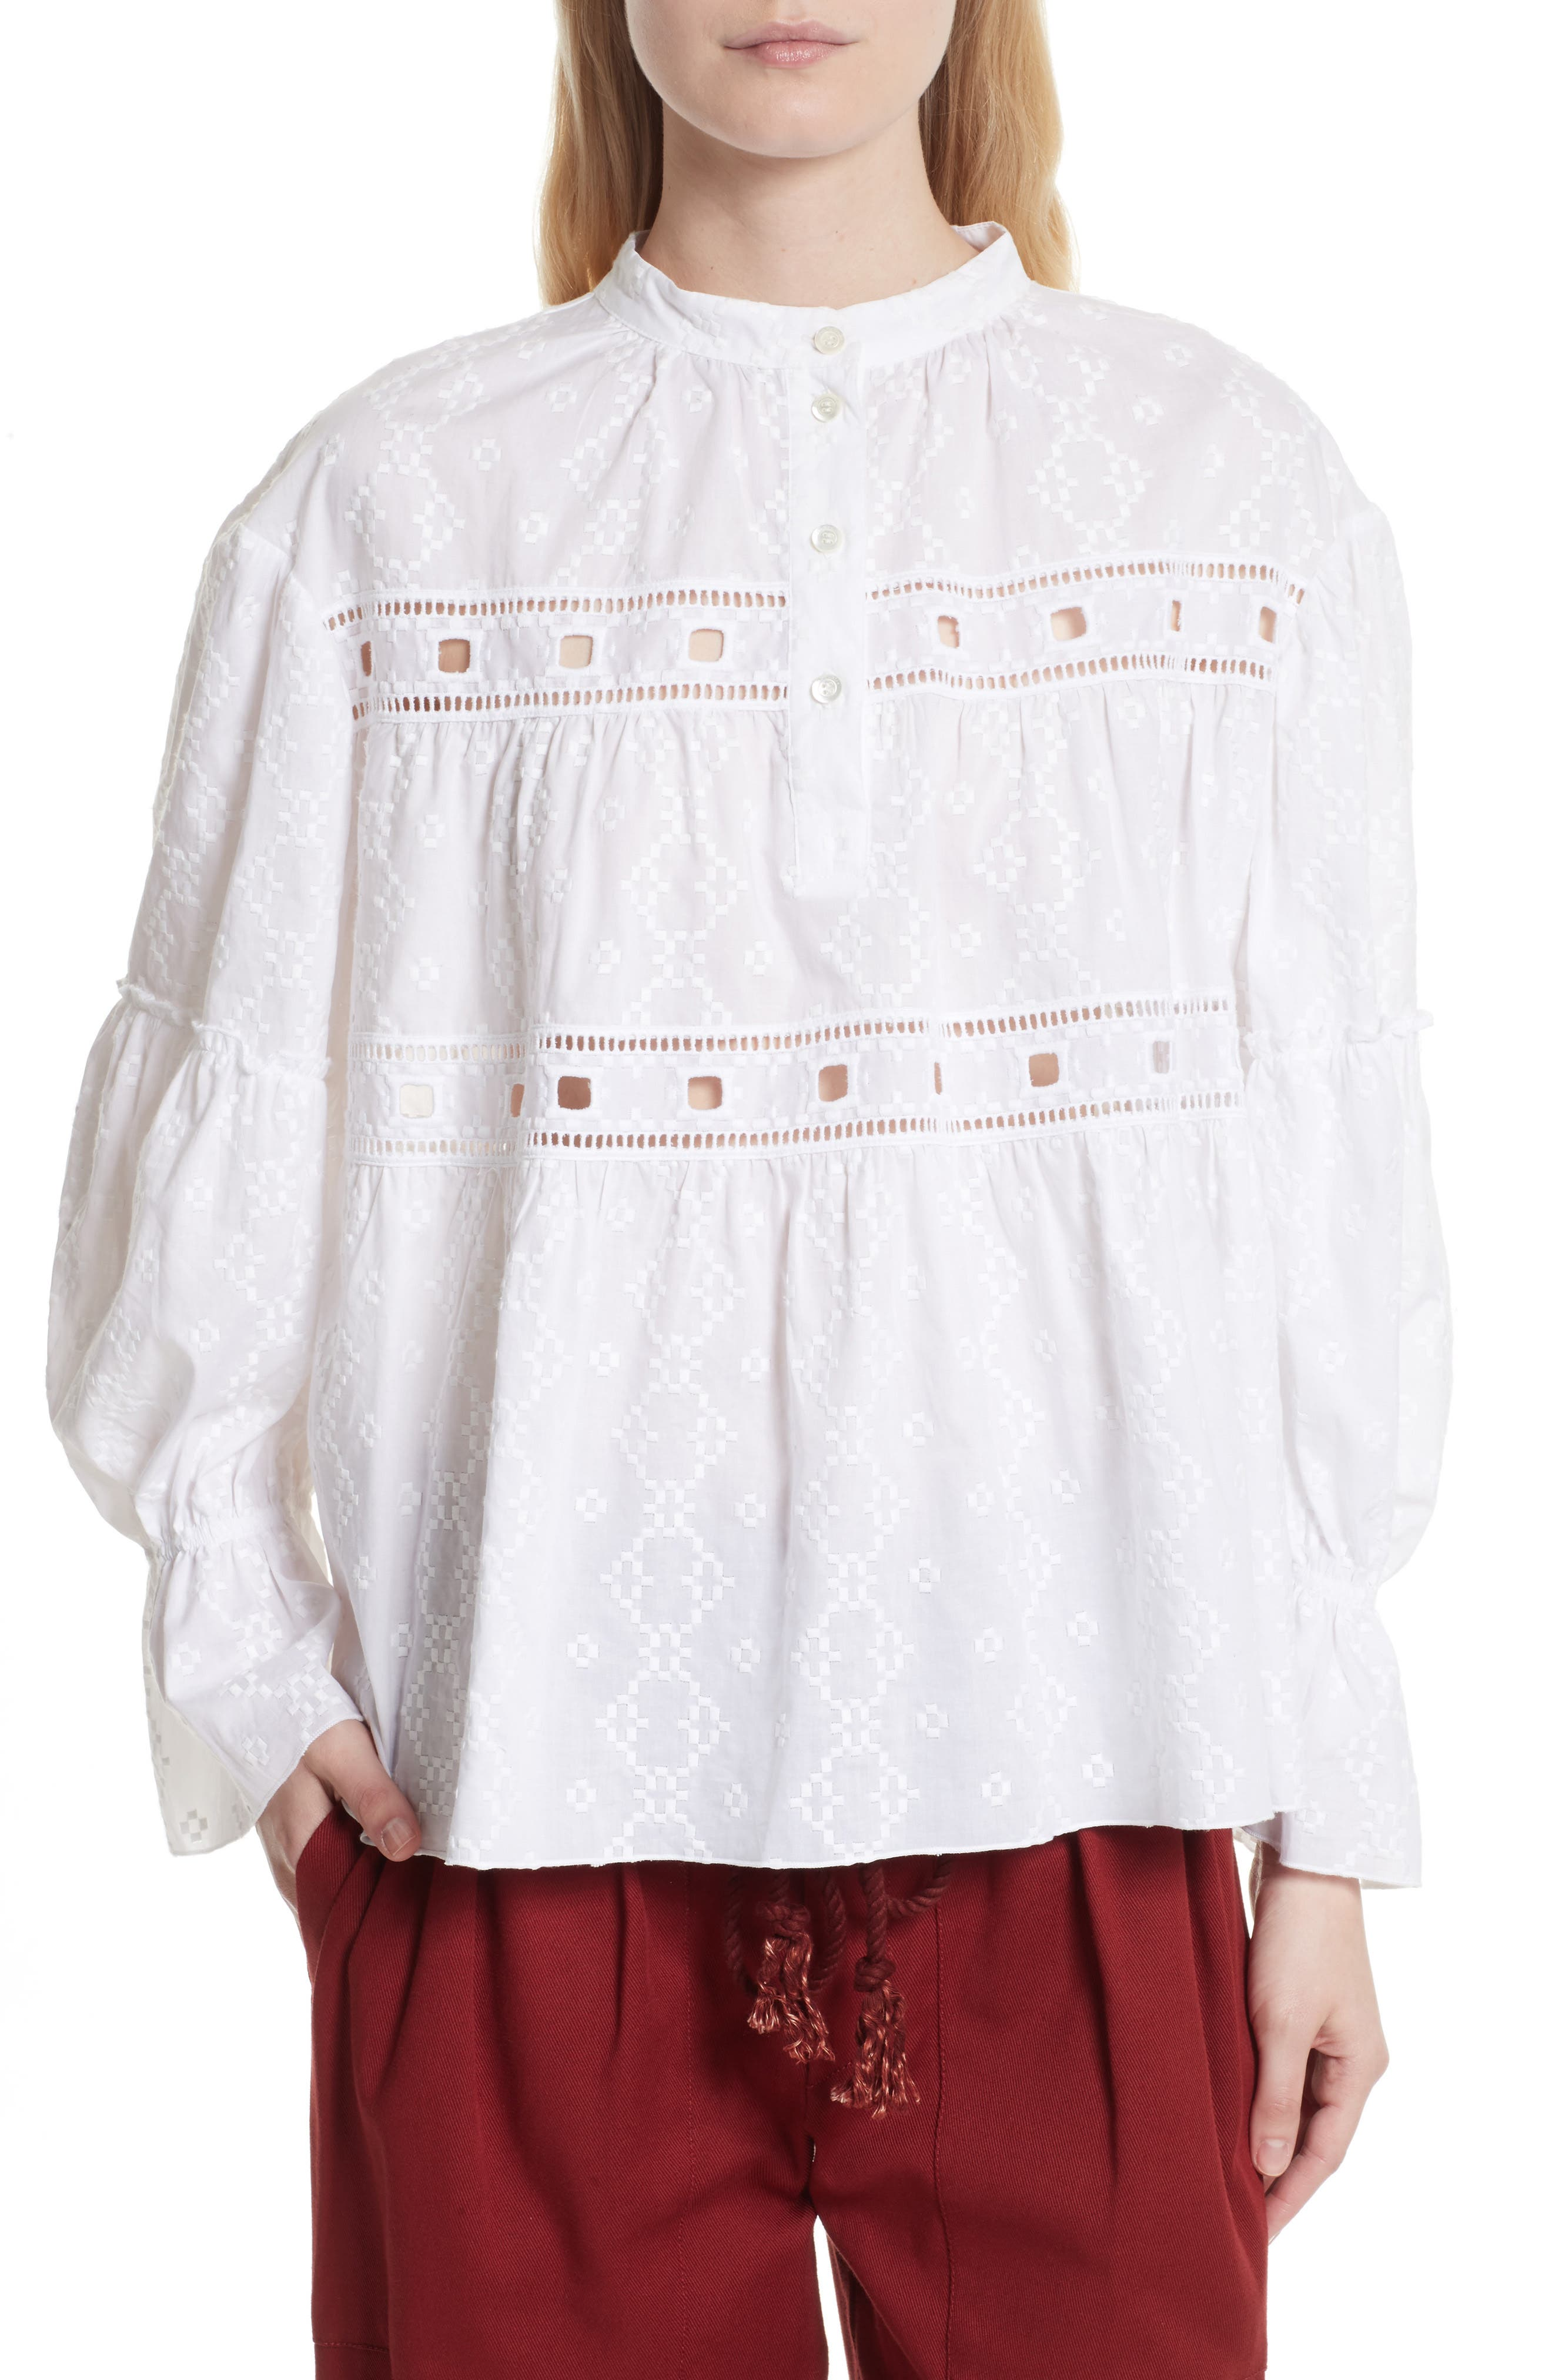 Main Image - See by Chloé Embroidered Eyelet Blouse